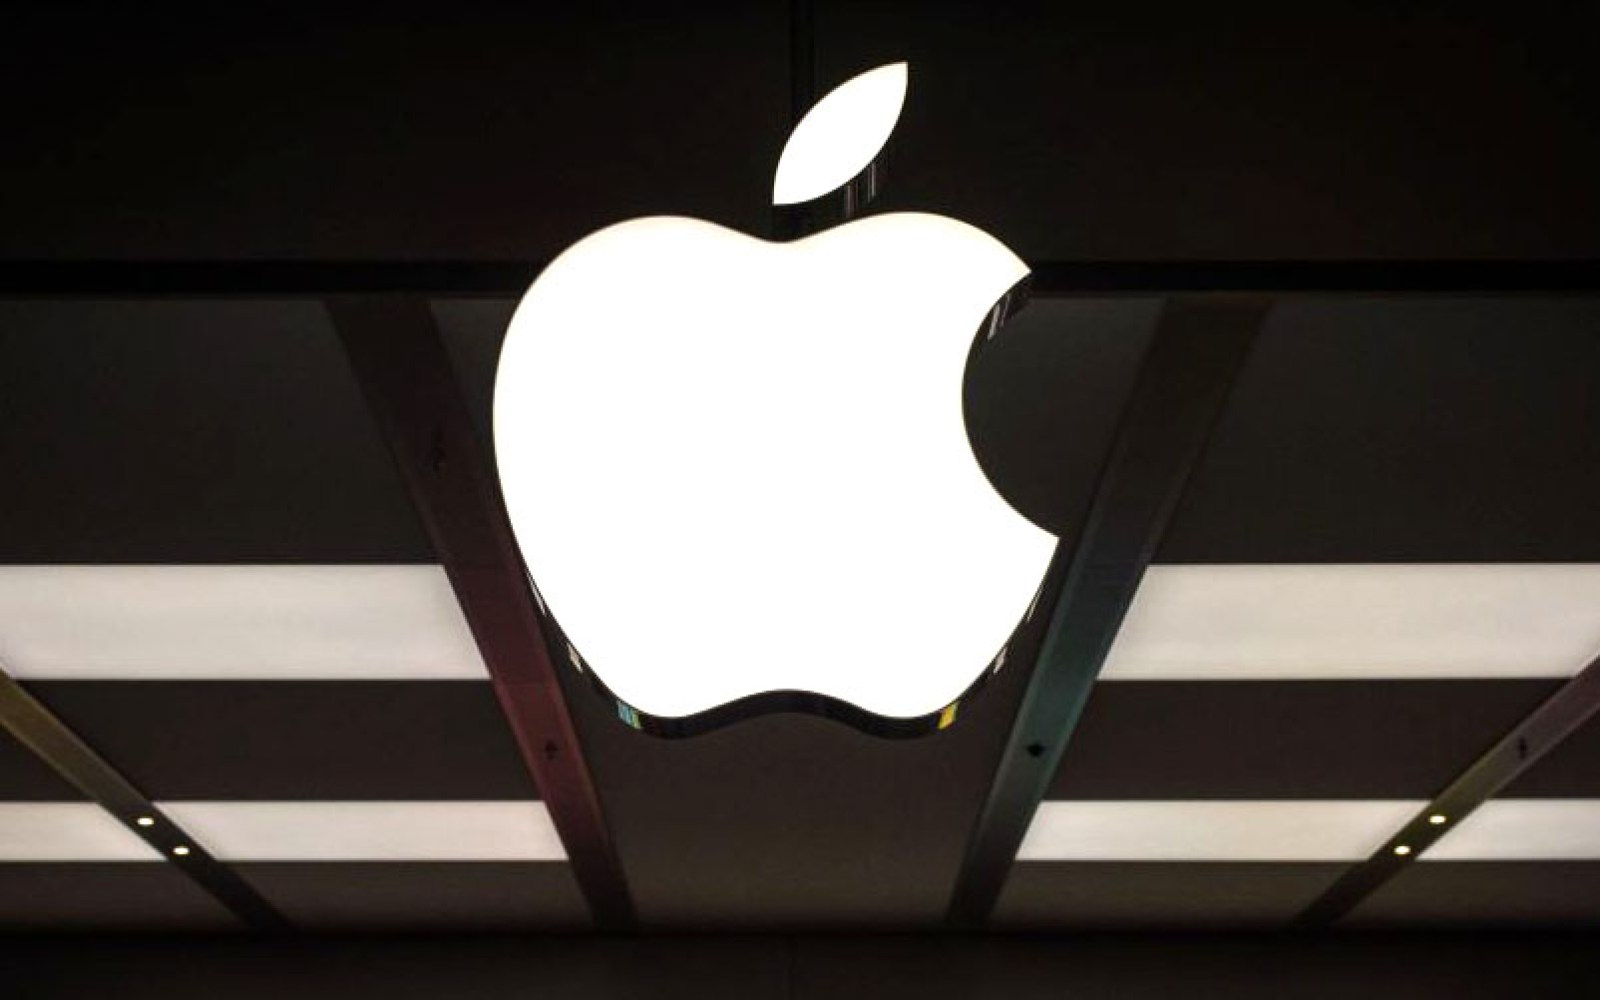 Apple and Google agree to settle patent litigation, but will not cross license